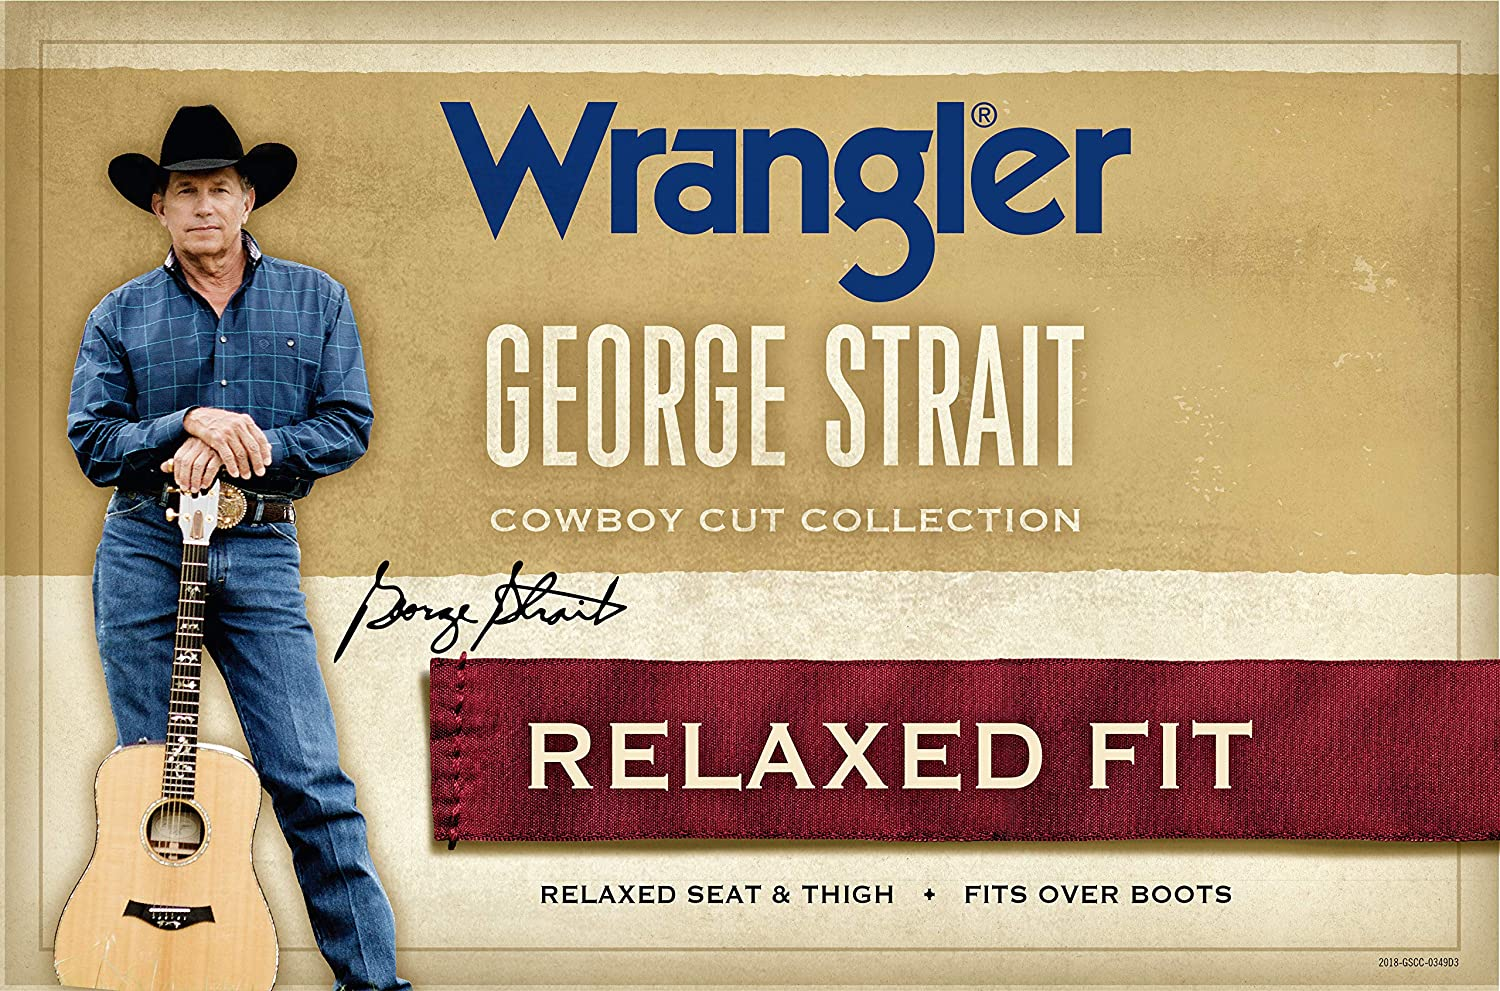 6ce6adfa Wrangler Men's George Strait Cowboy Cut Relaxed Fit Jean at Amazon Men's  Clothing store: George Straight Wrangler Jeans